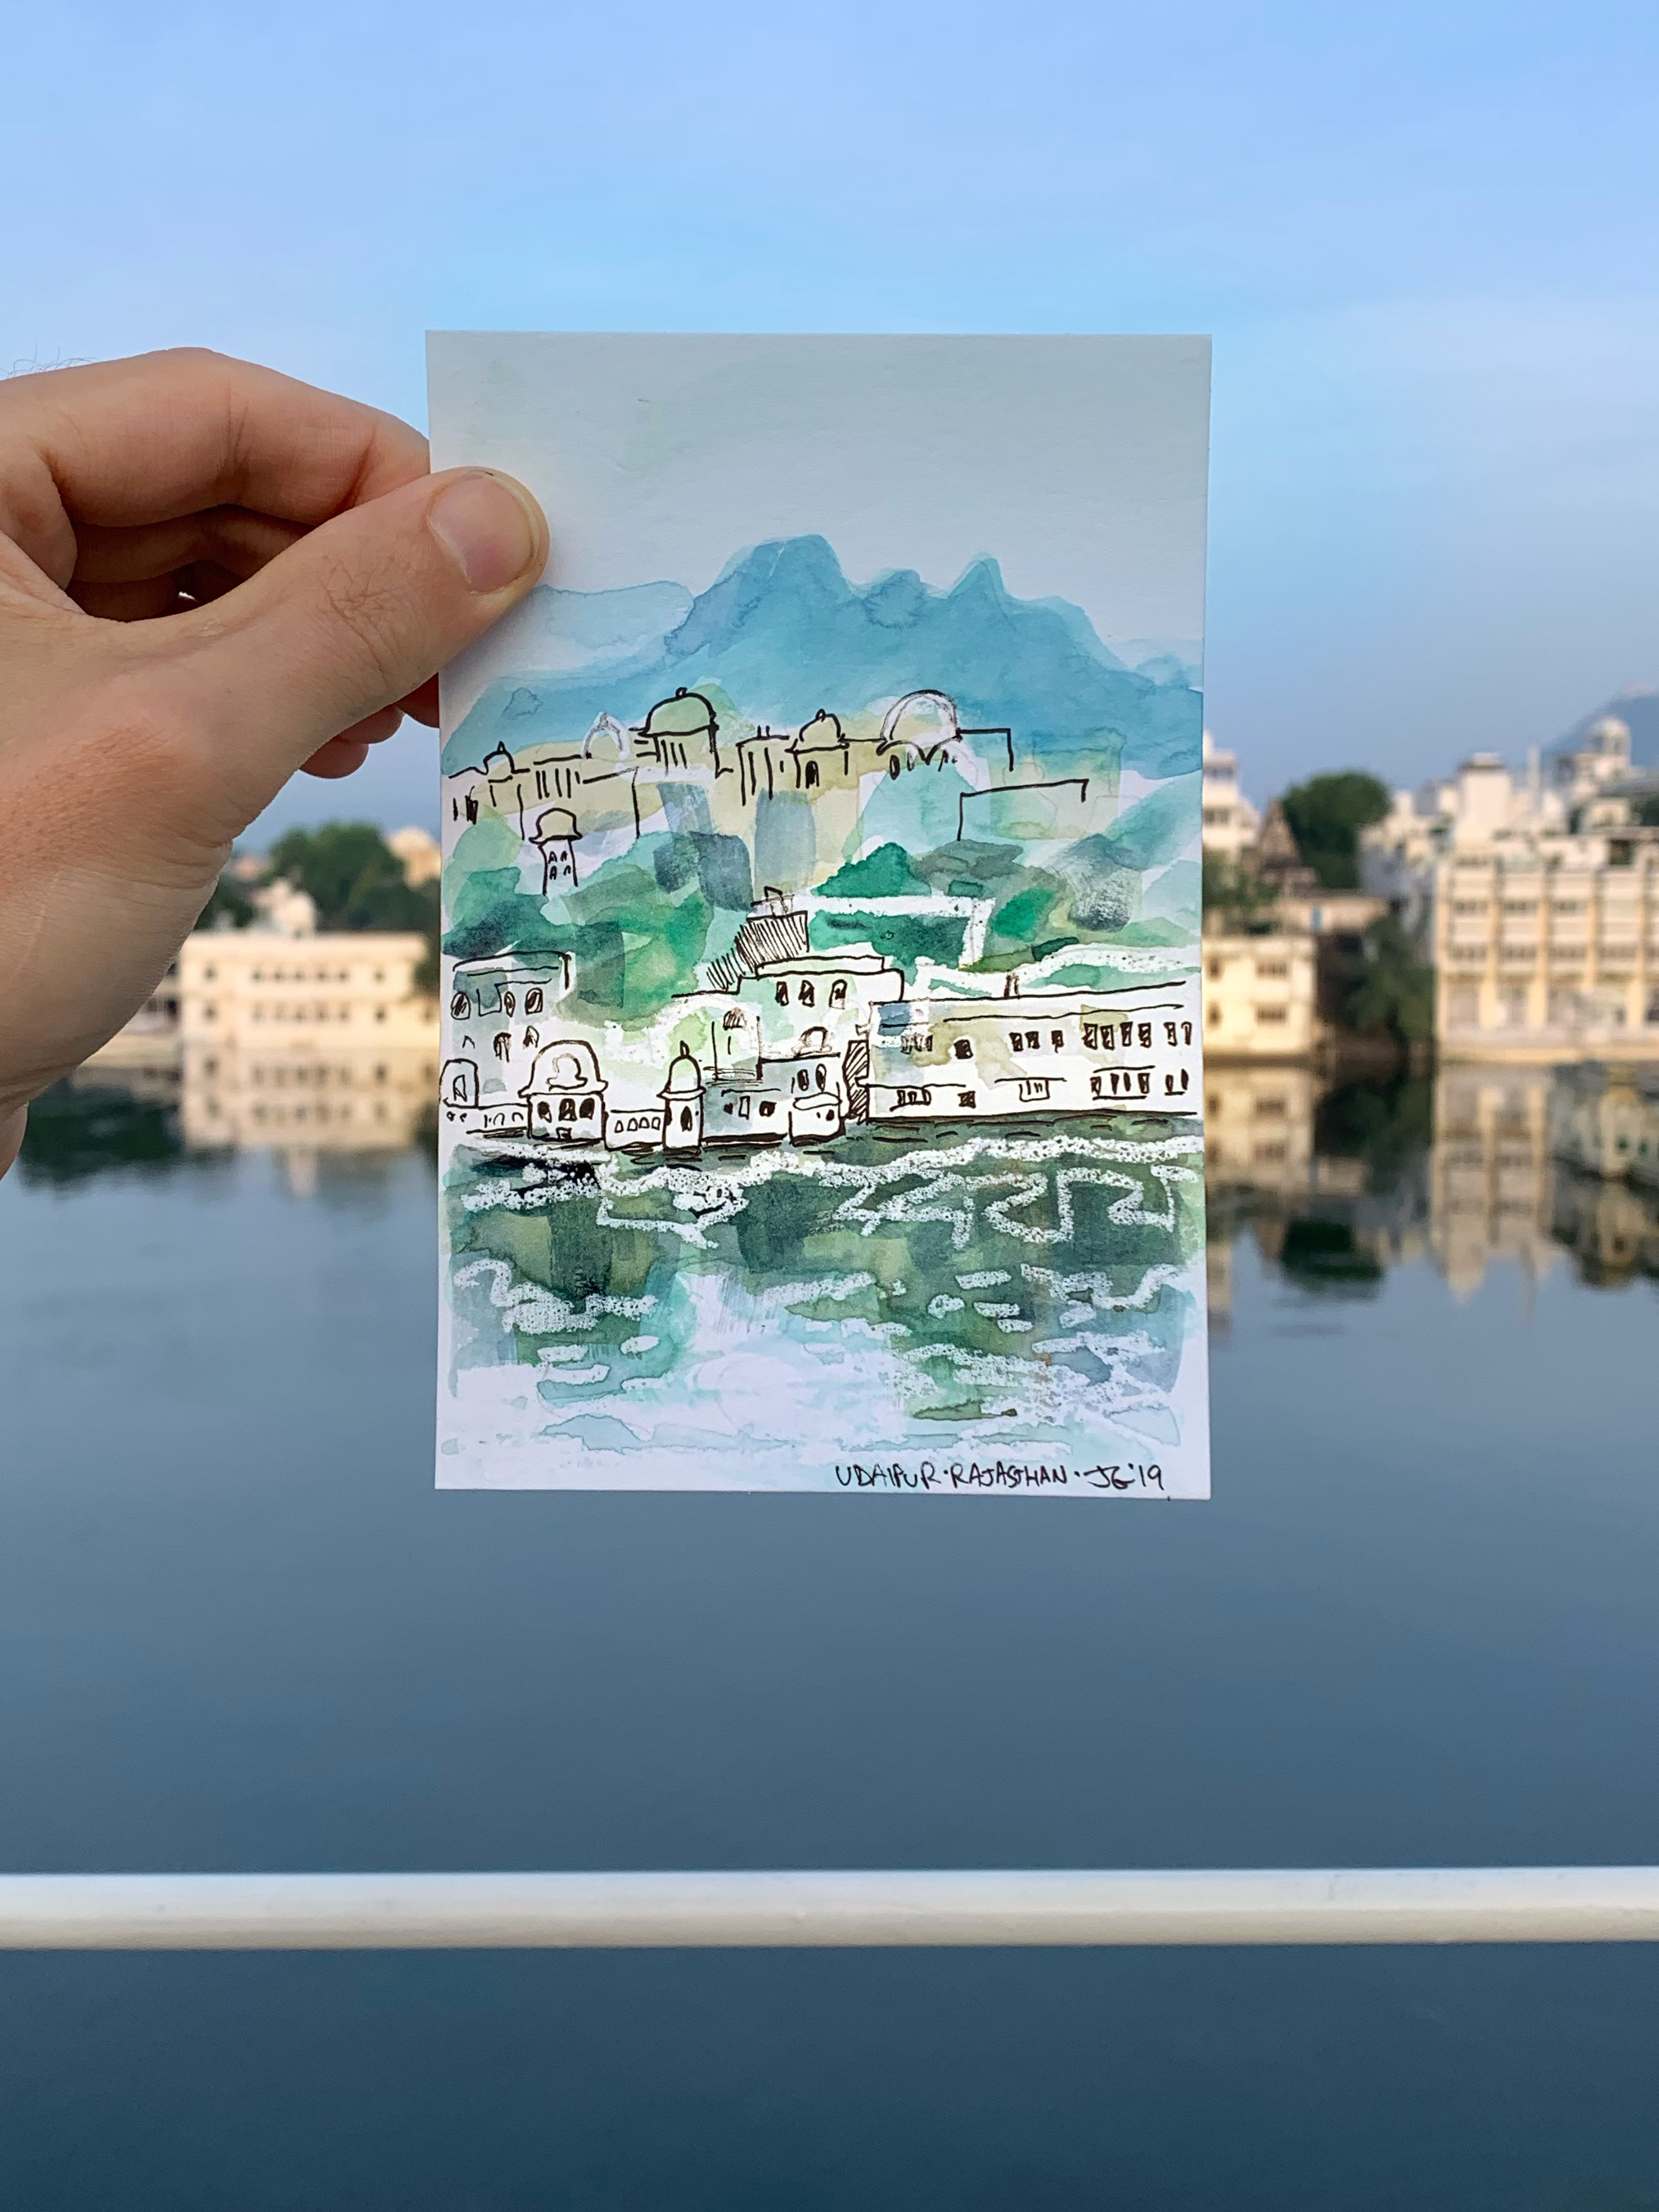 Udaipur reflected in Lake Pichola.